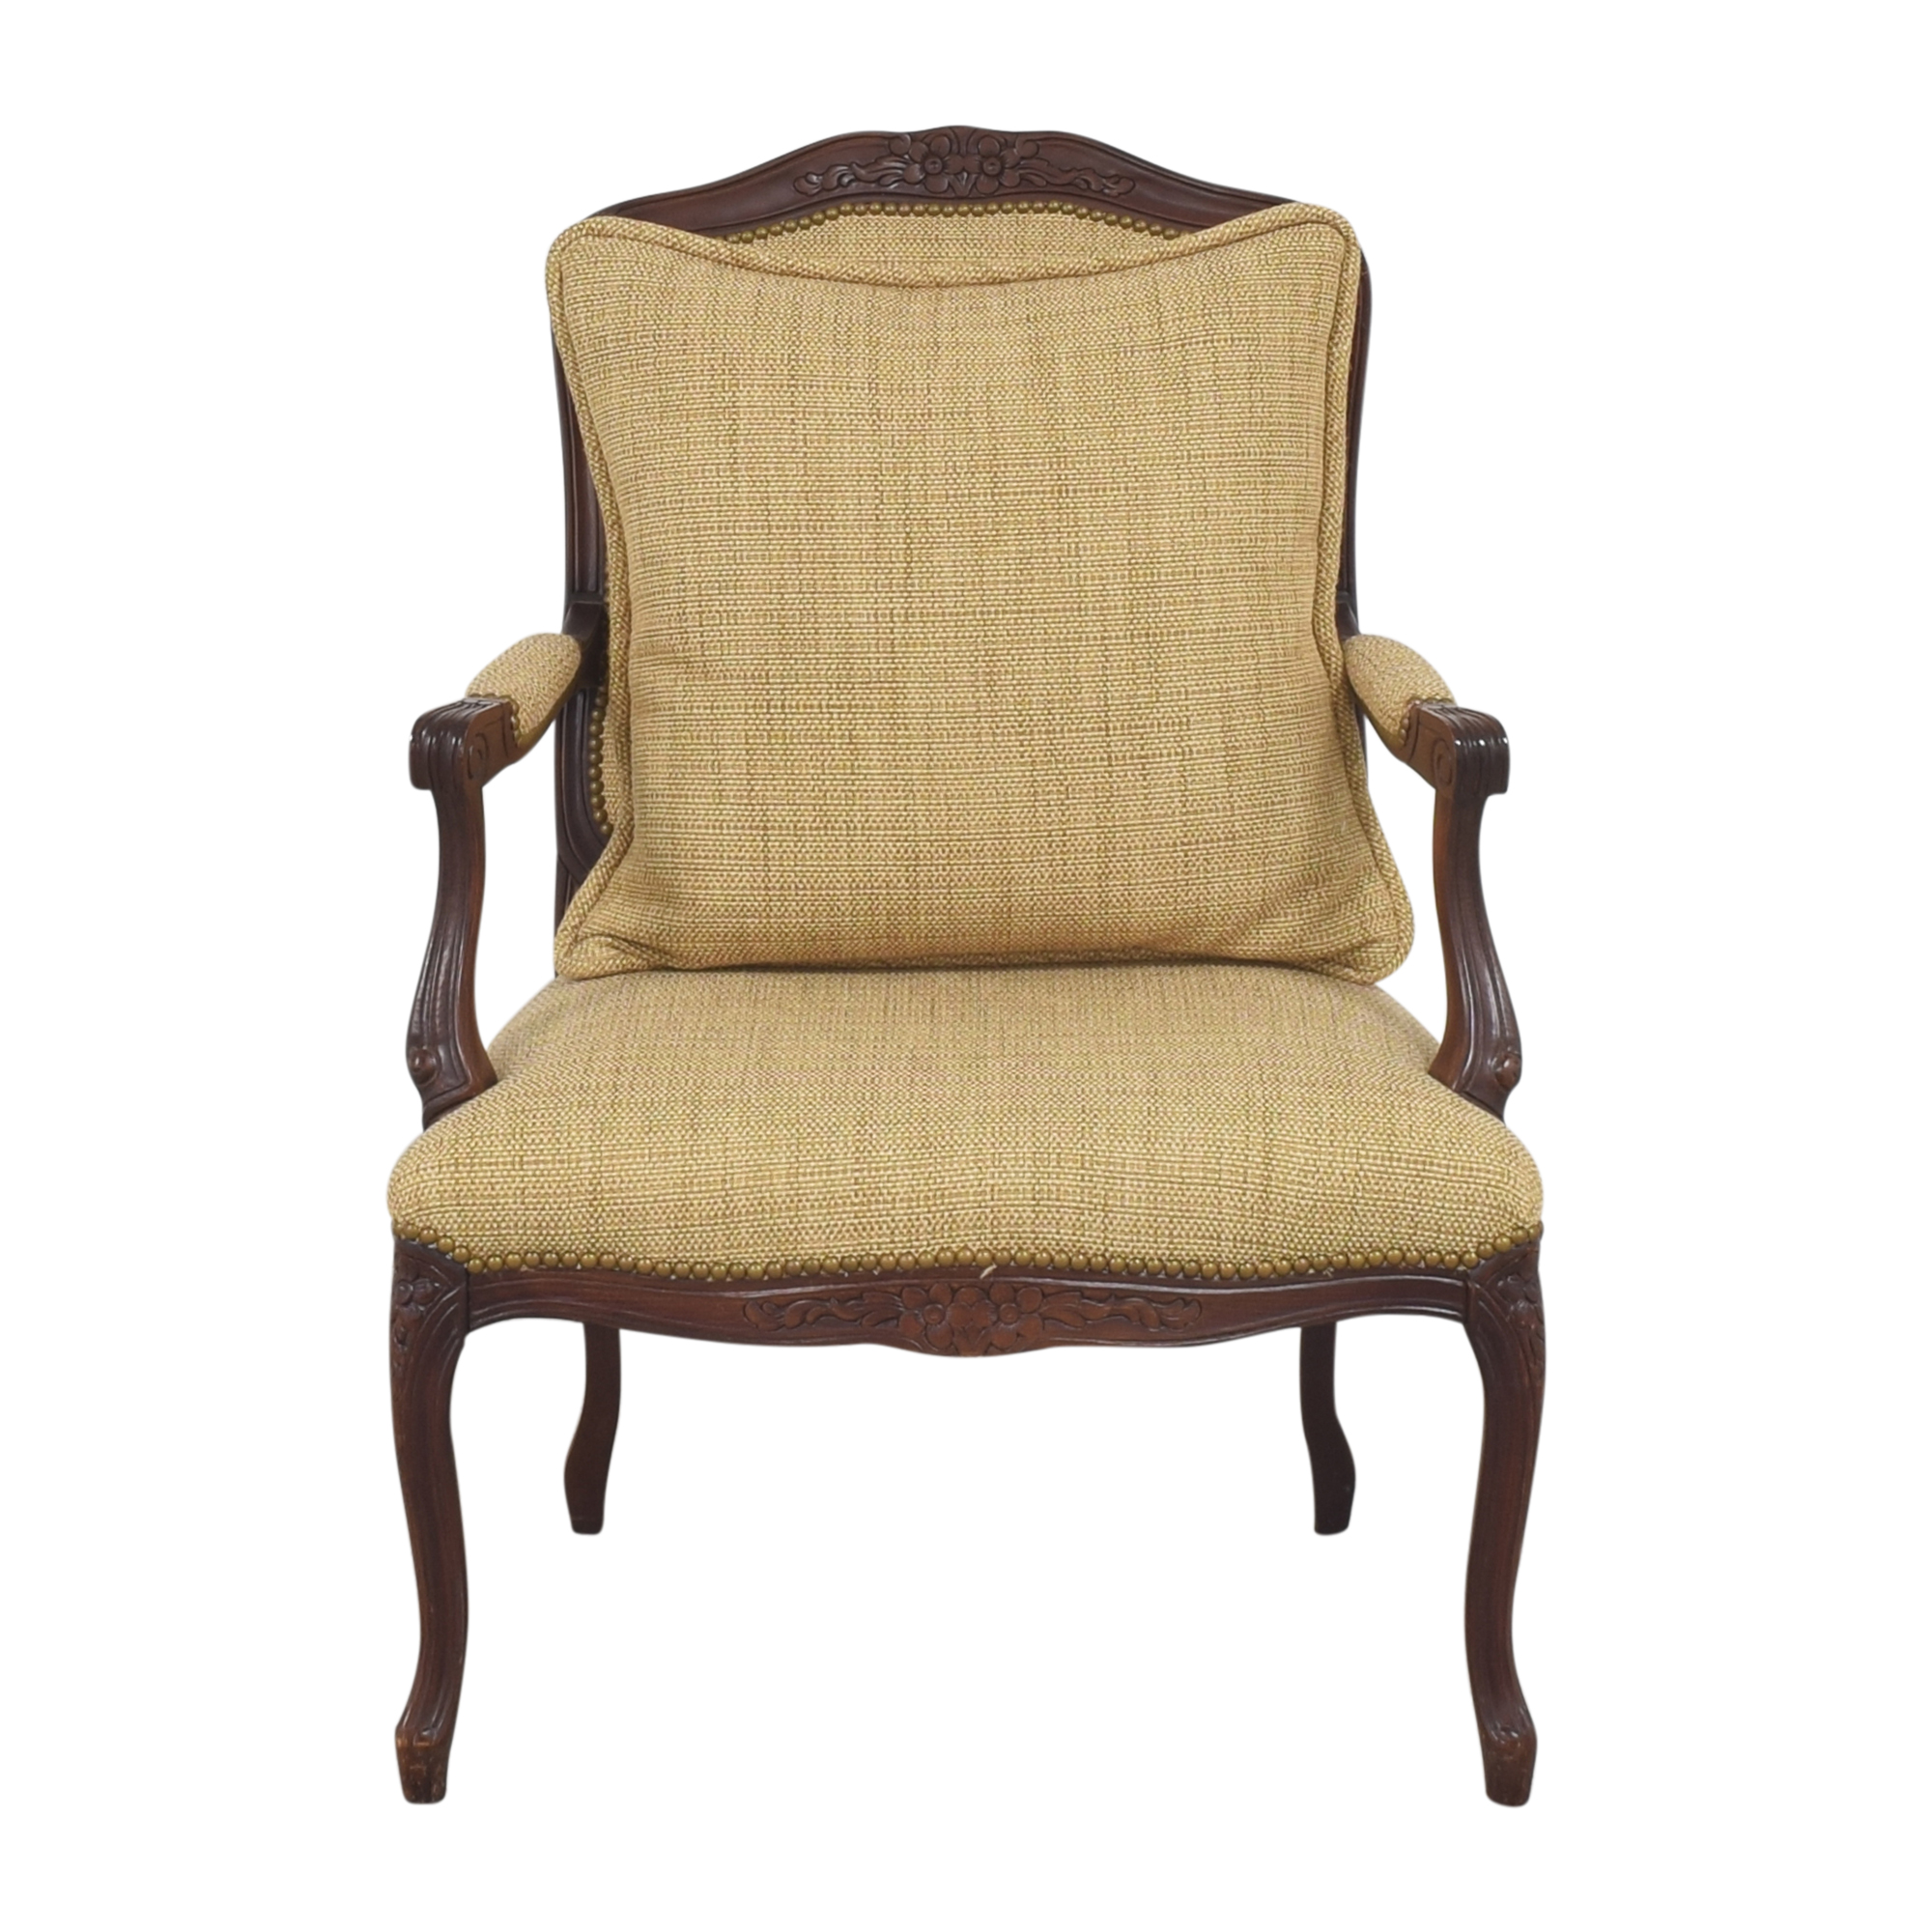 Upholstered Accent Chair second hand